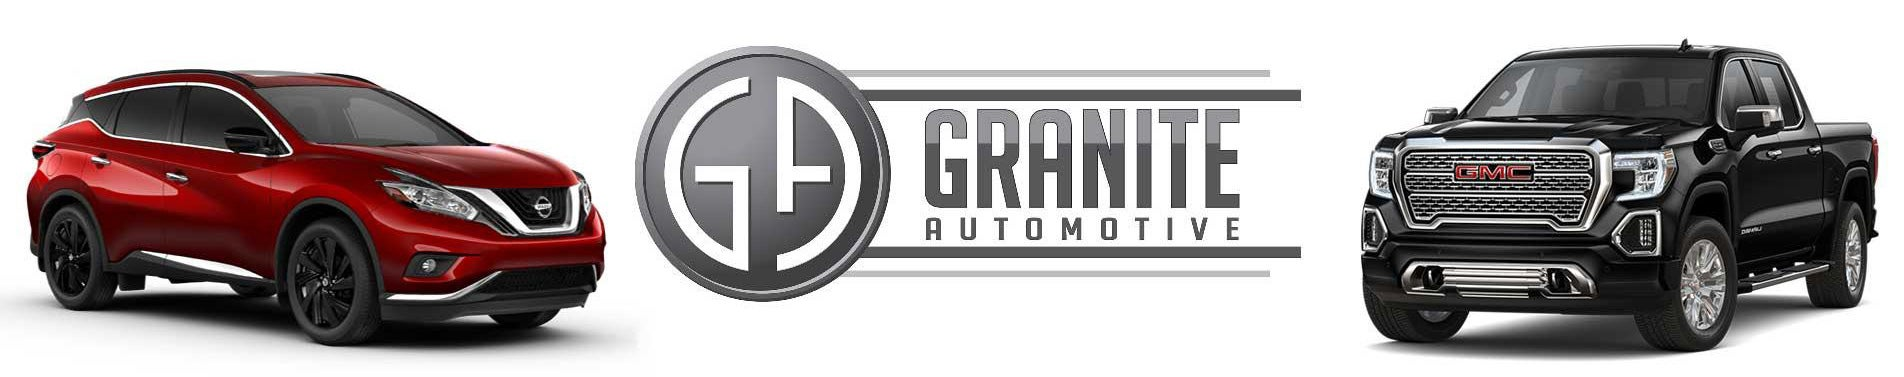 Rapid City Car Dealerships >> About Our Group Dealership - Rapid City Group dealer in ...